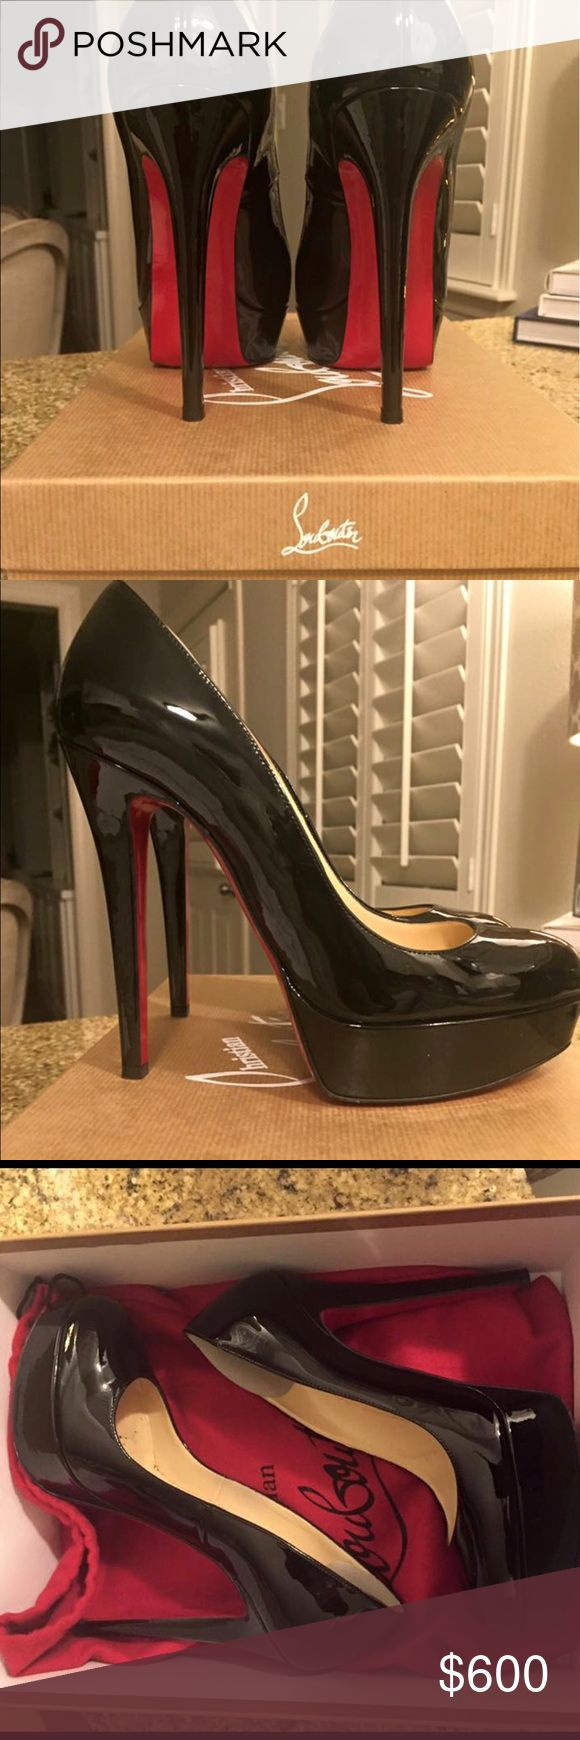 "Christian Louboutin Pumps: Bianca Christians Louboutin Pumps. 4.8"" covered heel; 1.5"" platform. Size 36 (6) Worn maybe 4 times. Purchased for $875 Christian Louboutin Shoes Platforms"